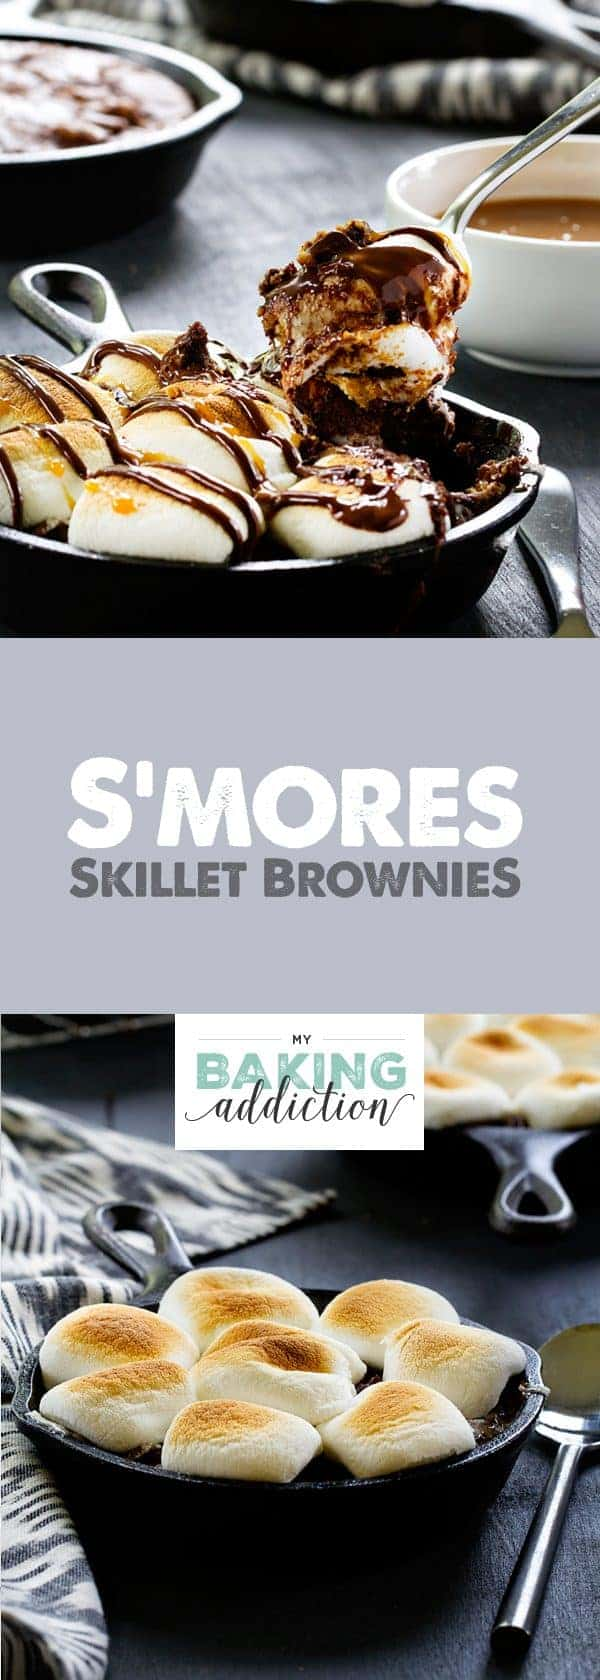 S'mores Skillet Brownies have a graham cracker crust topped with a layer of fudgy brownies and perfectly roasted marshmallows. What's not to love?